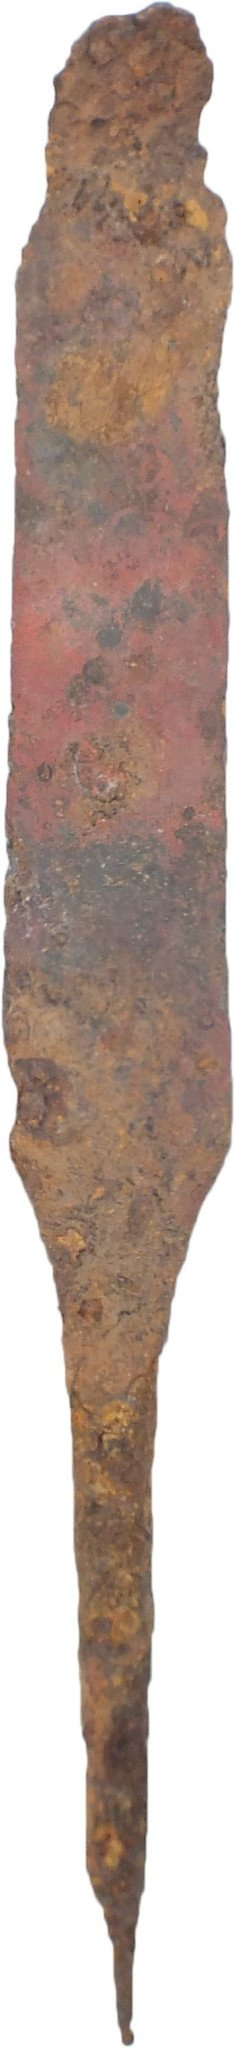 Very Rare Celtic Iron Broadsword C.250-150 Bc - Product